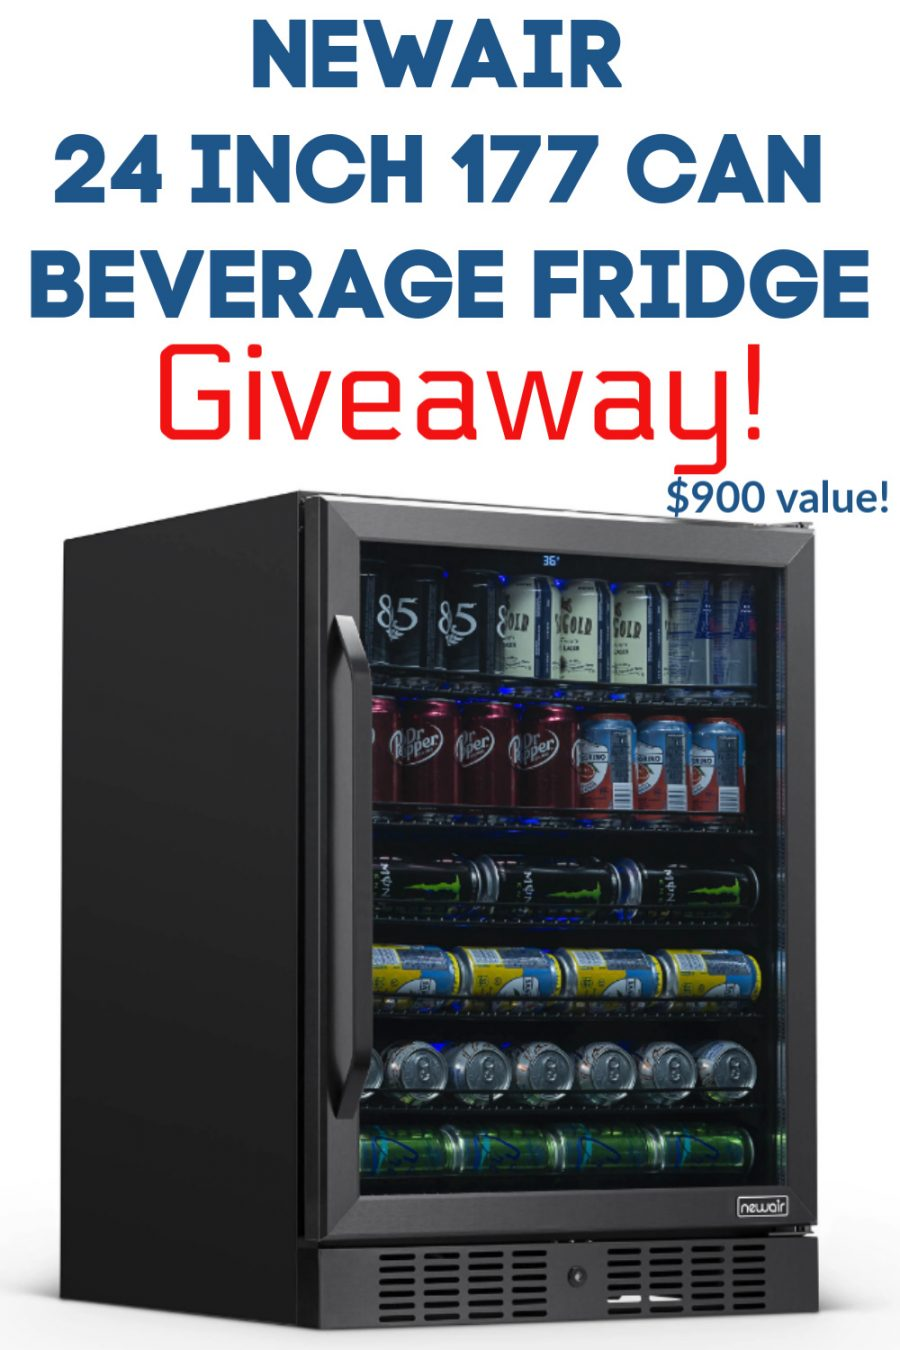 NewAir 24 Inch Built In 177 Can Beverage Fridge Giveaway